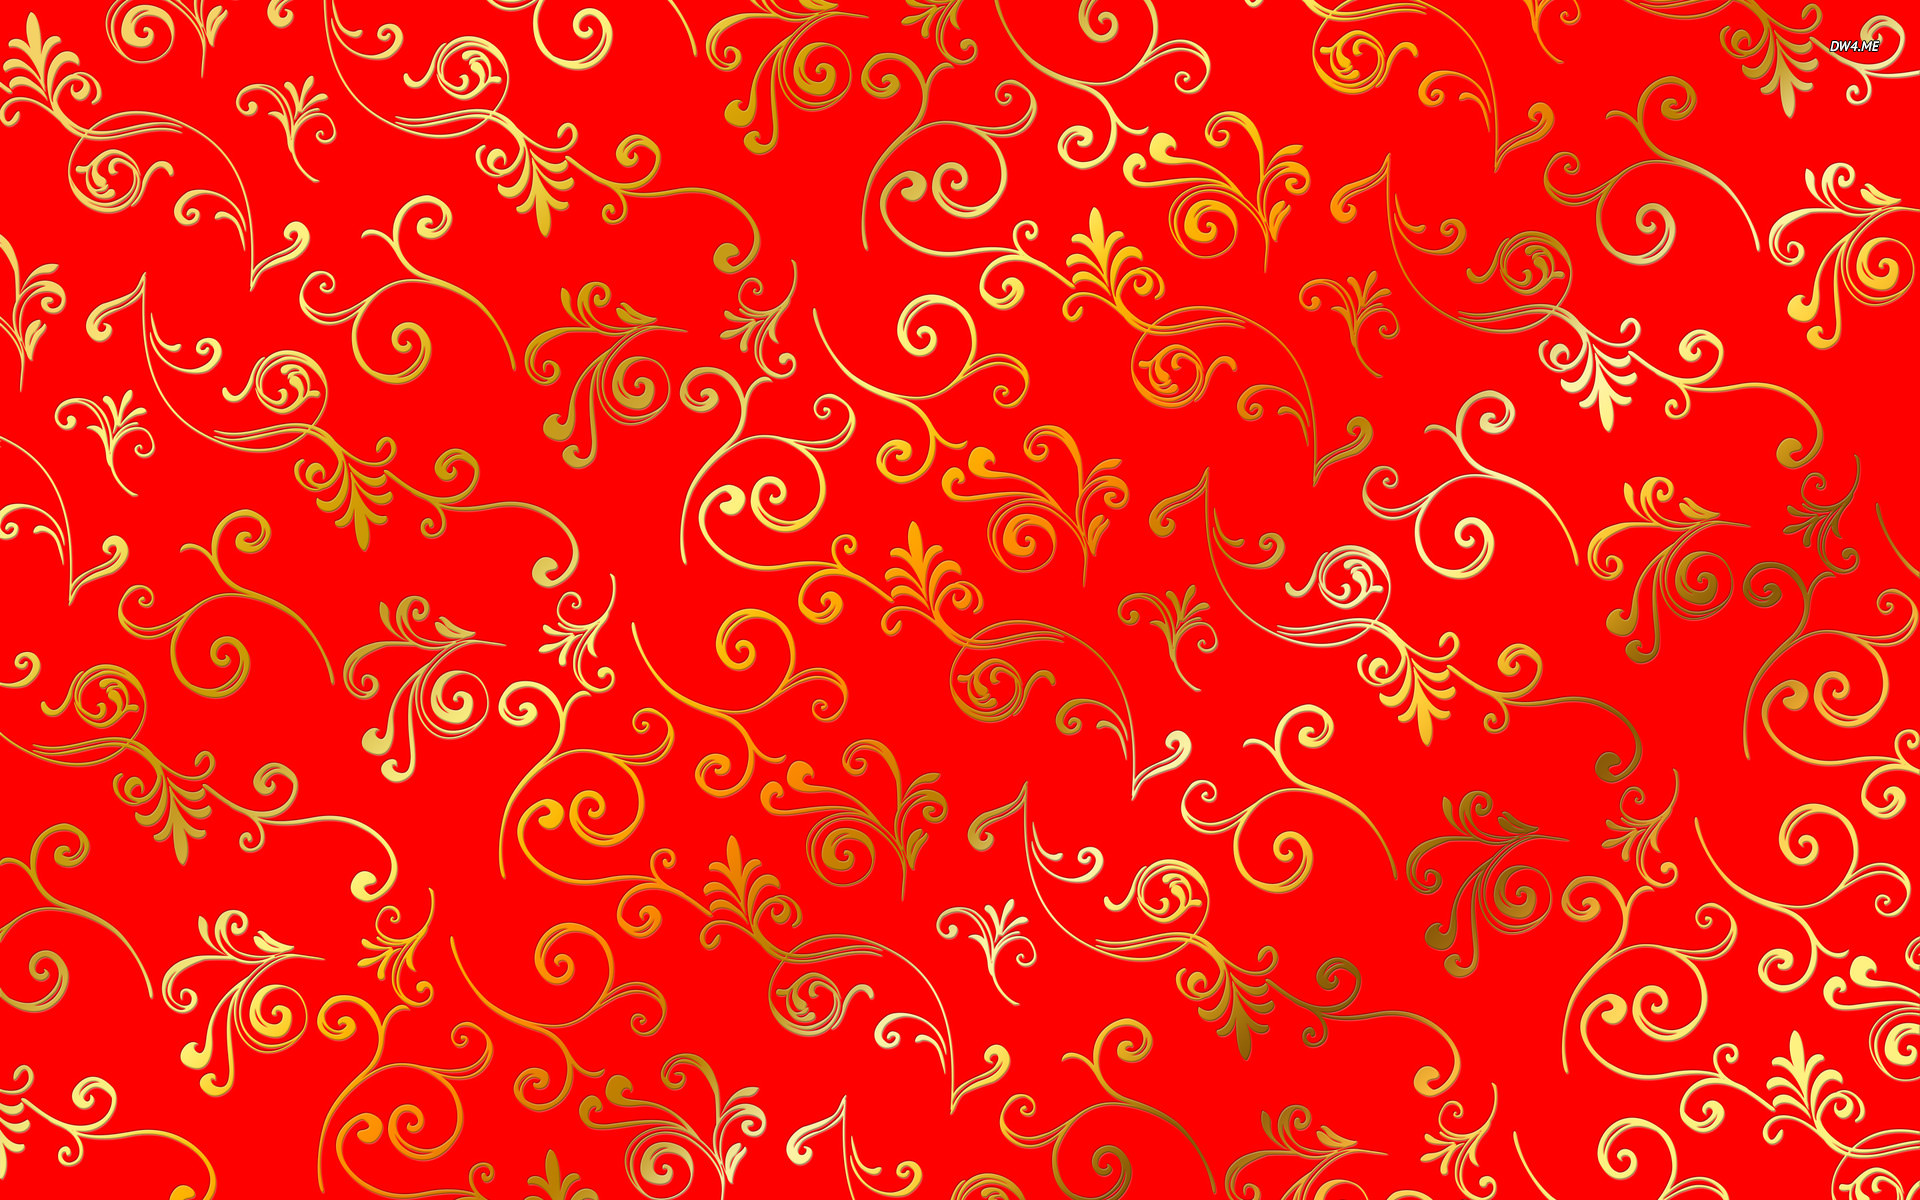 red golden background - photo #12